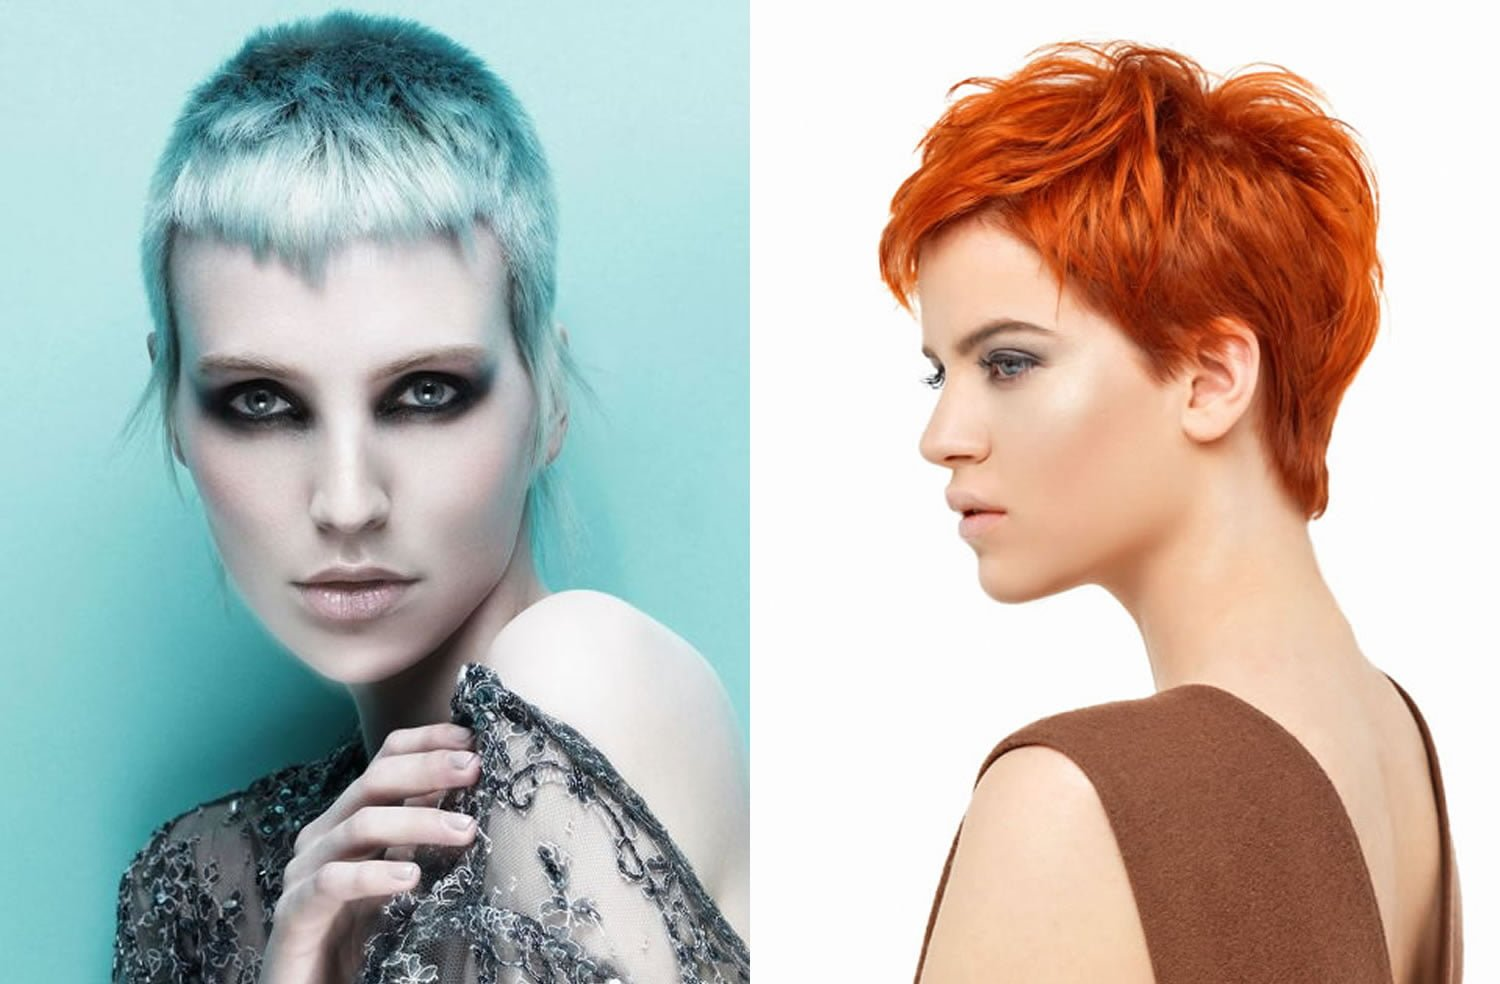 Hairstyles Of 2019: 39 Easy Short Pixie Cut Hairstyles 2019